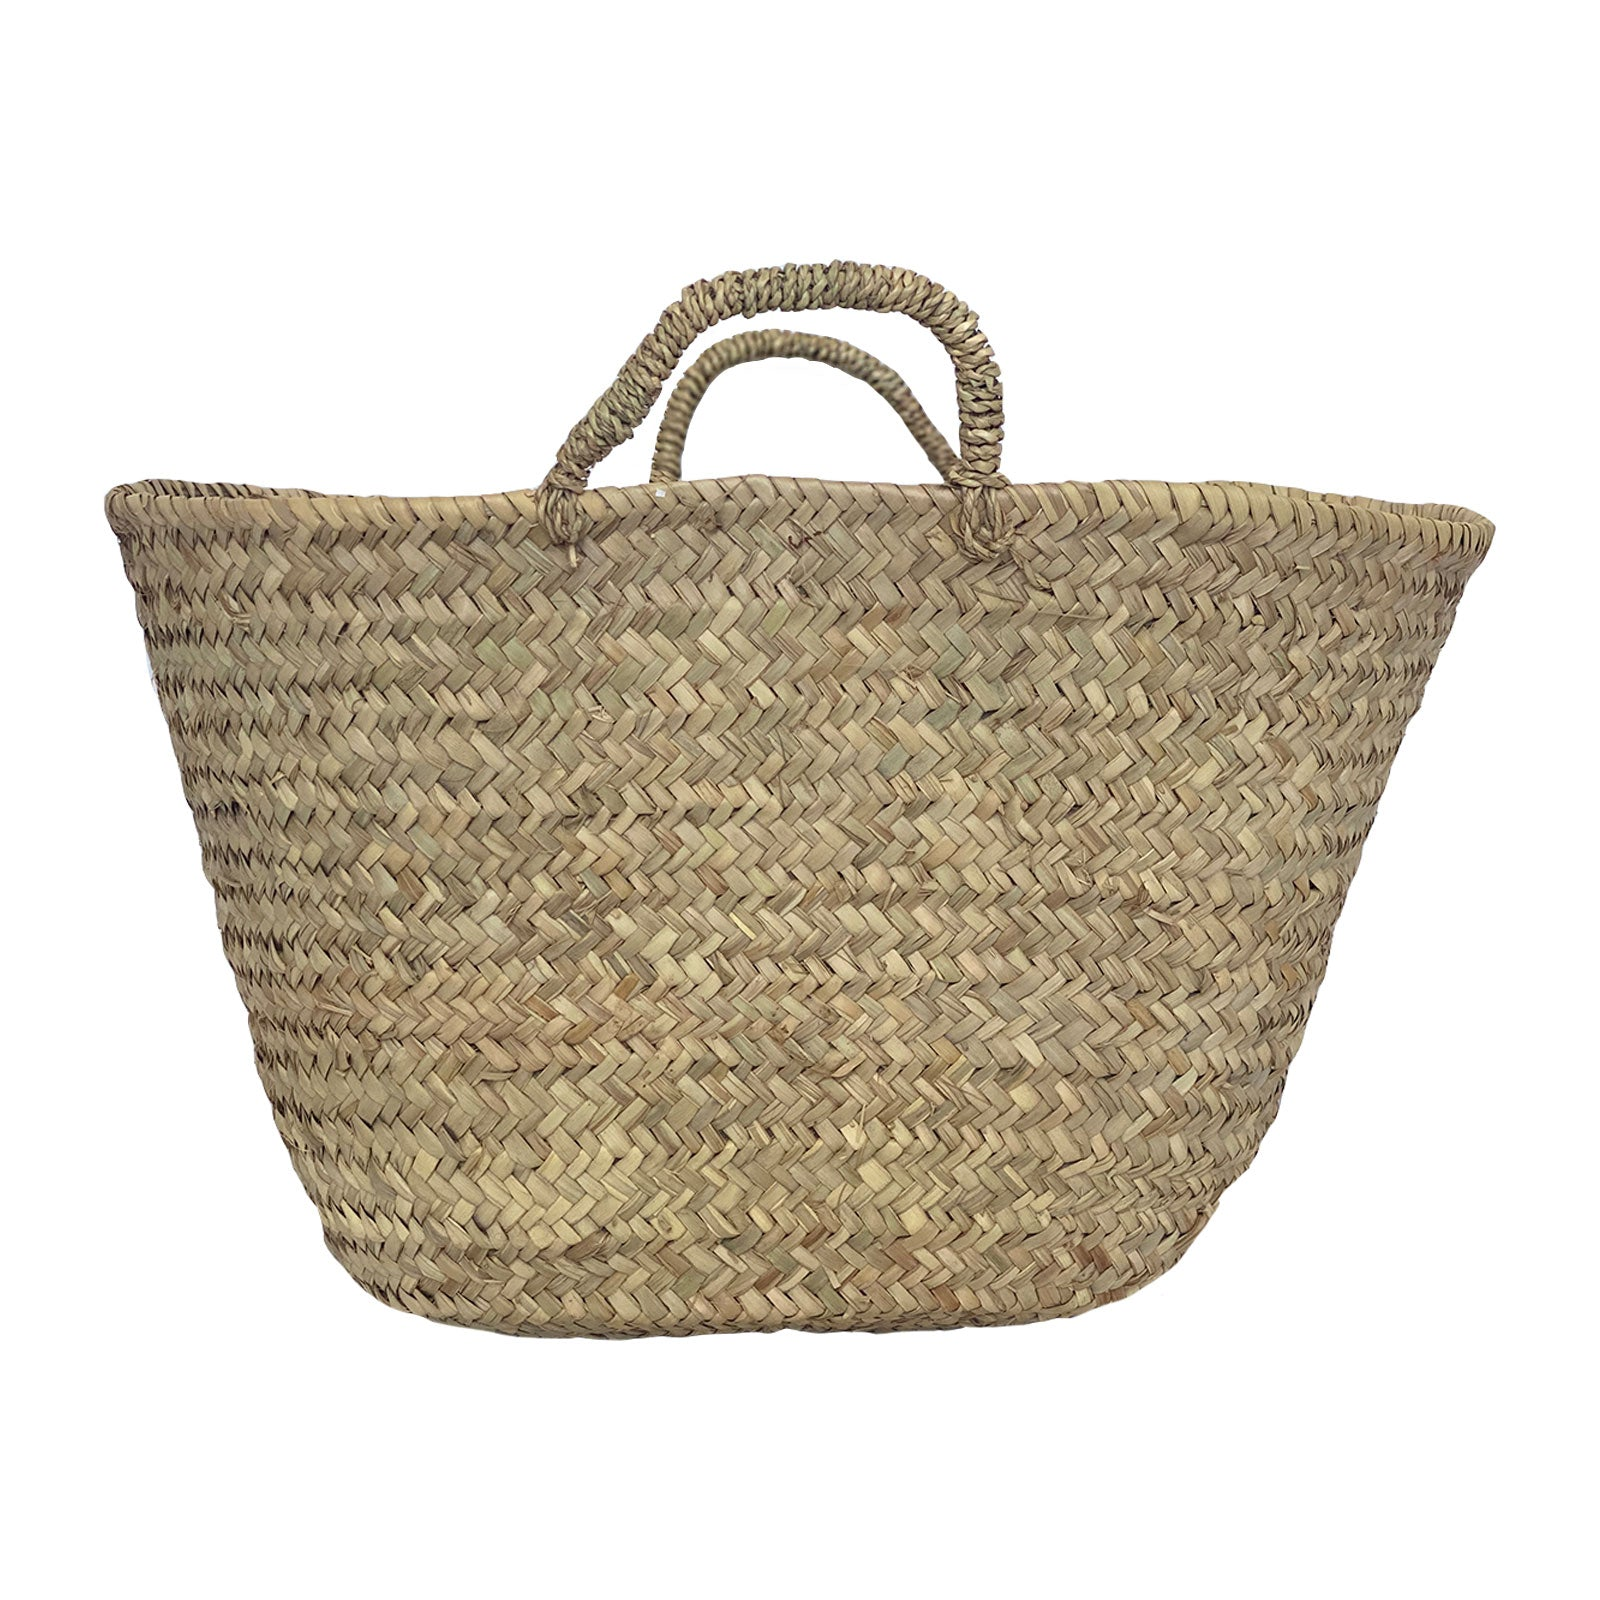 Basket Tote with Woven Handles